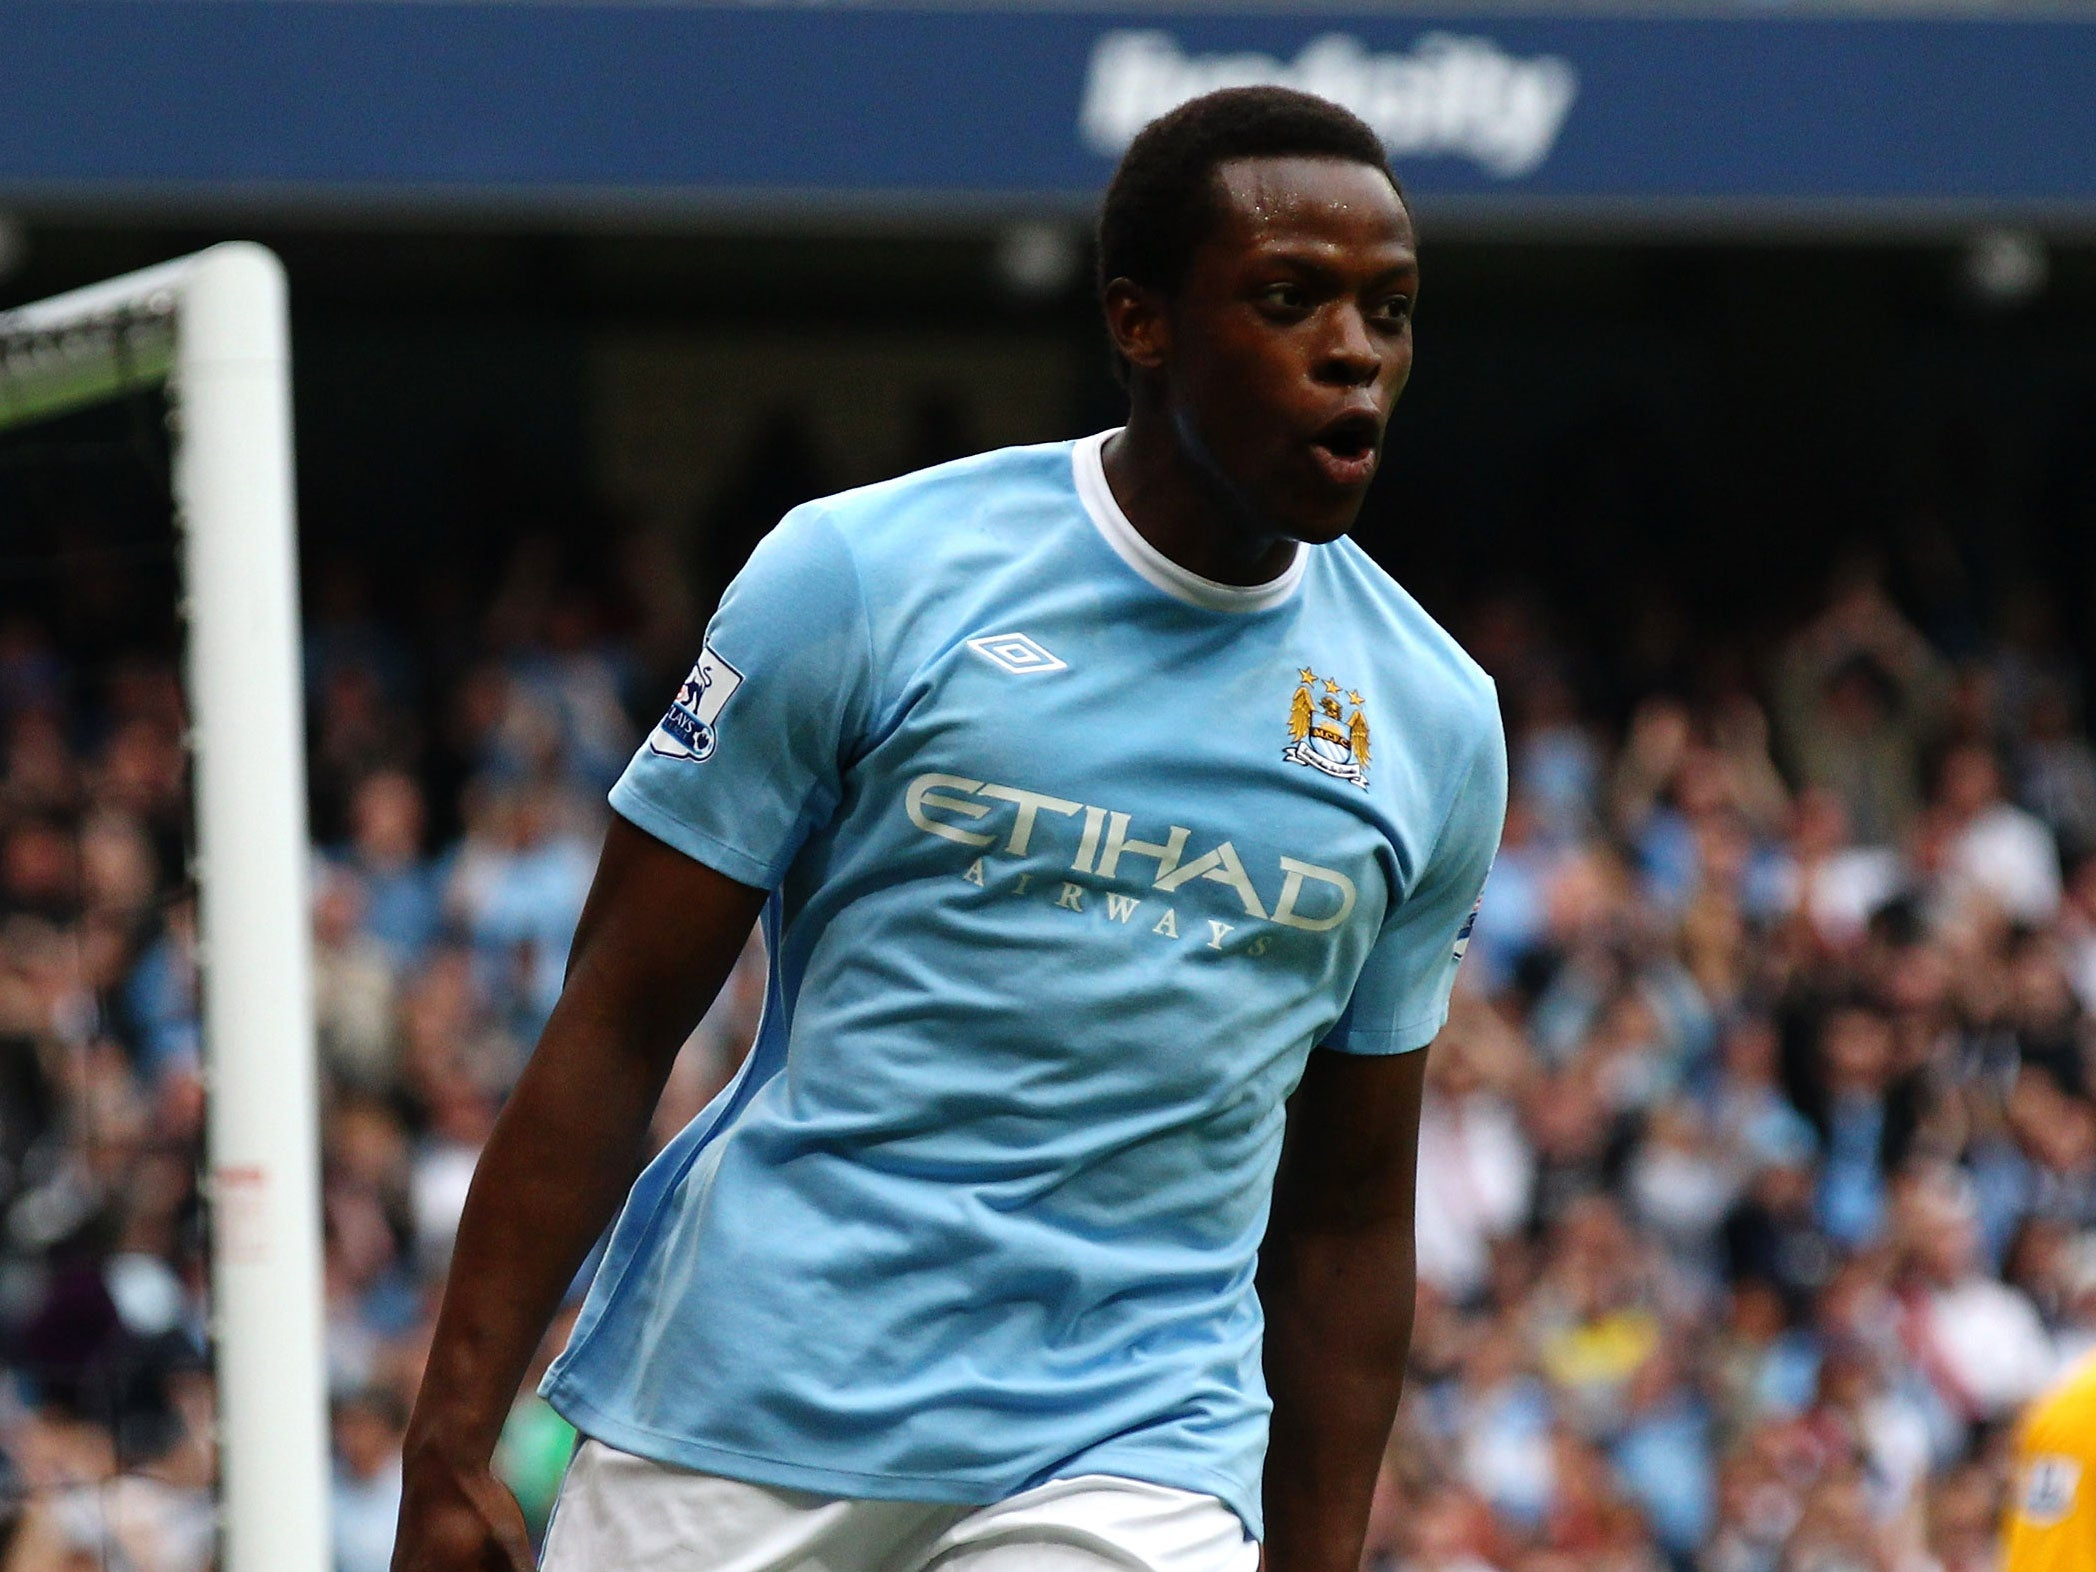 Nedum Onuoha - latest news, breaking stories and comment - The ...